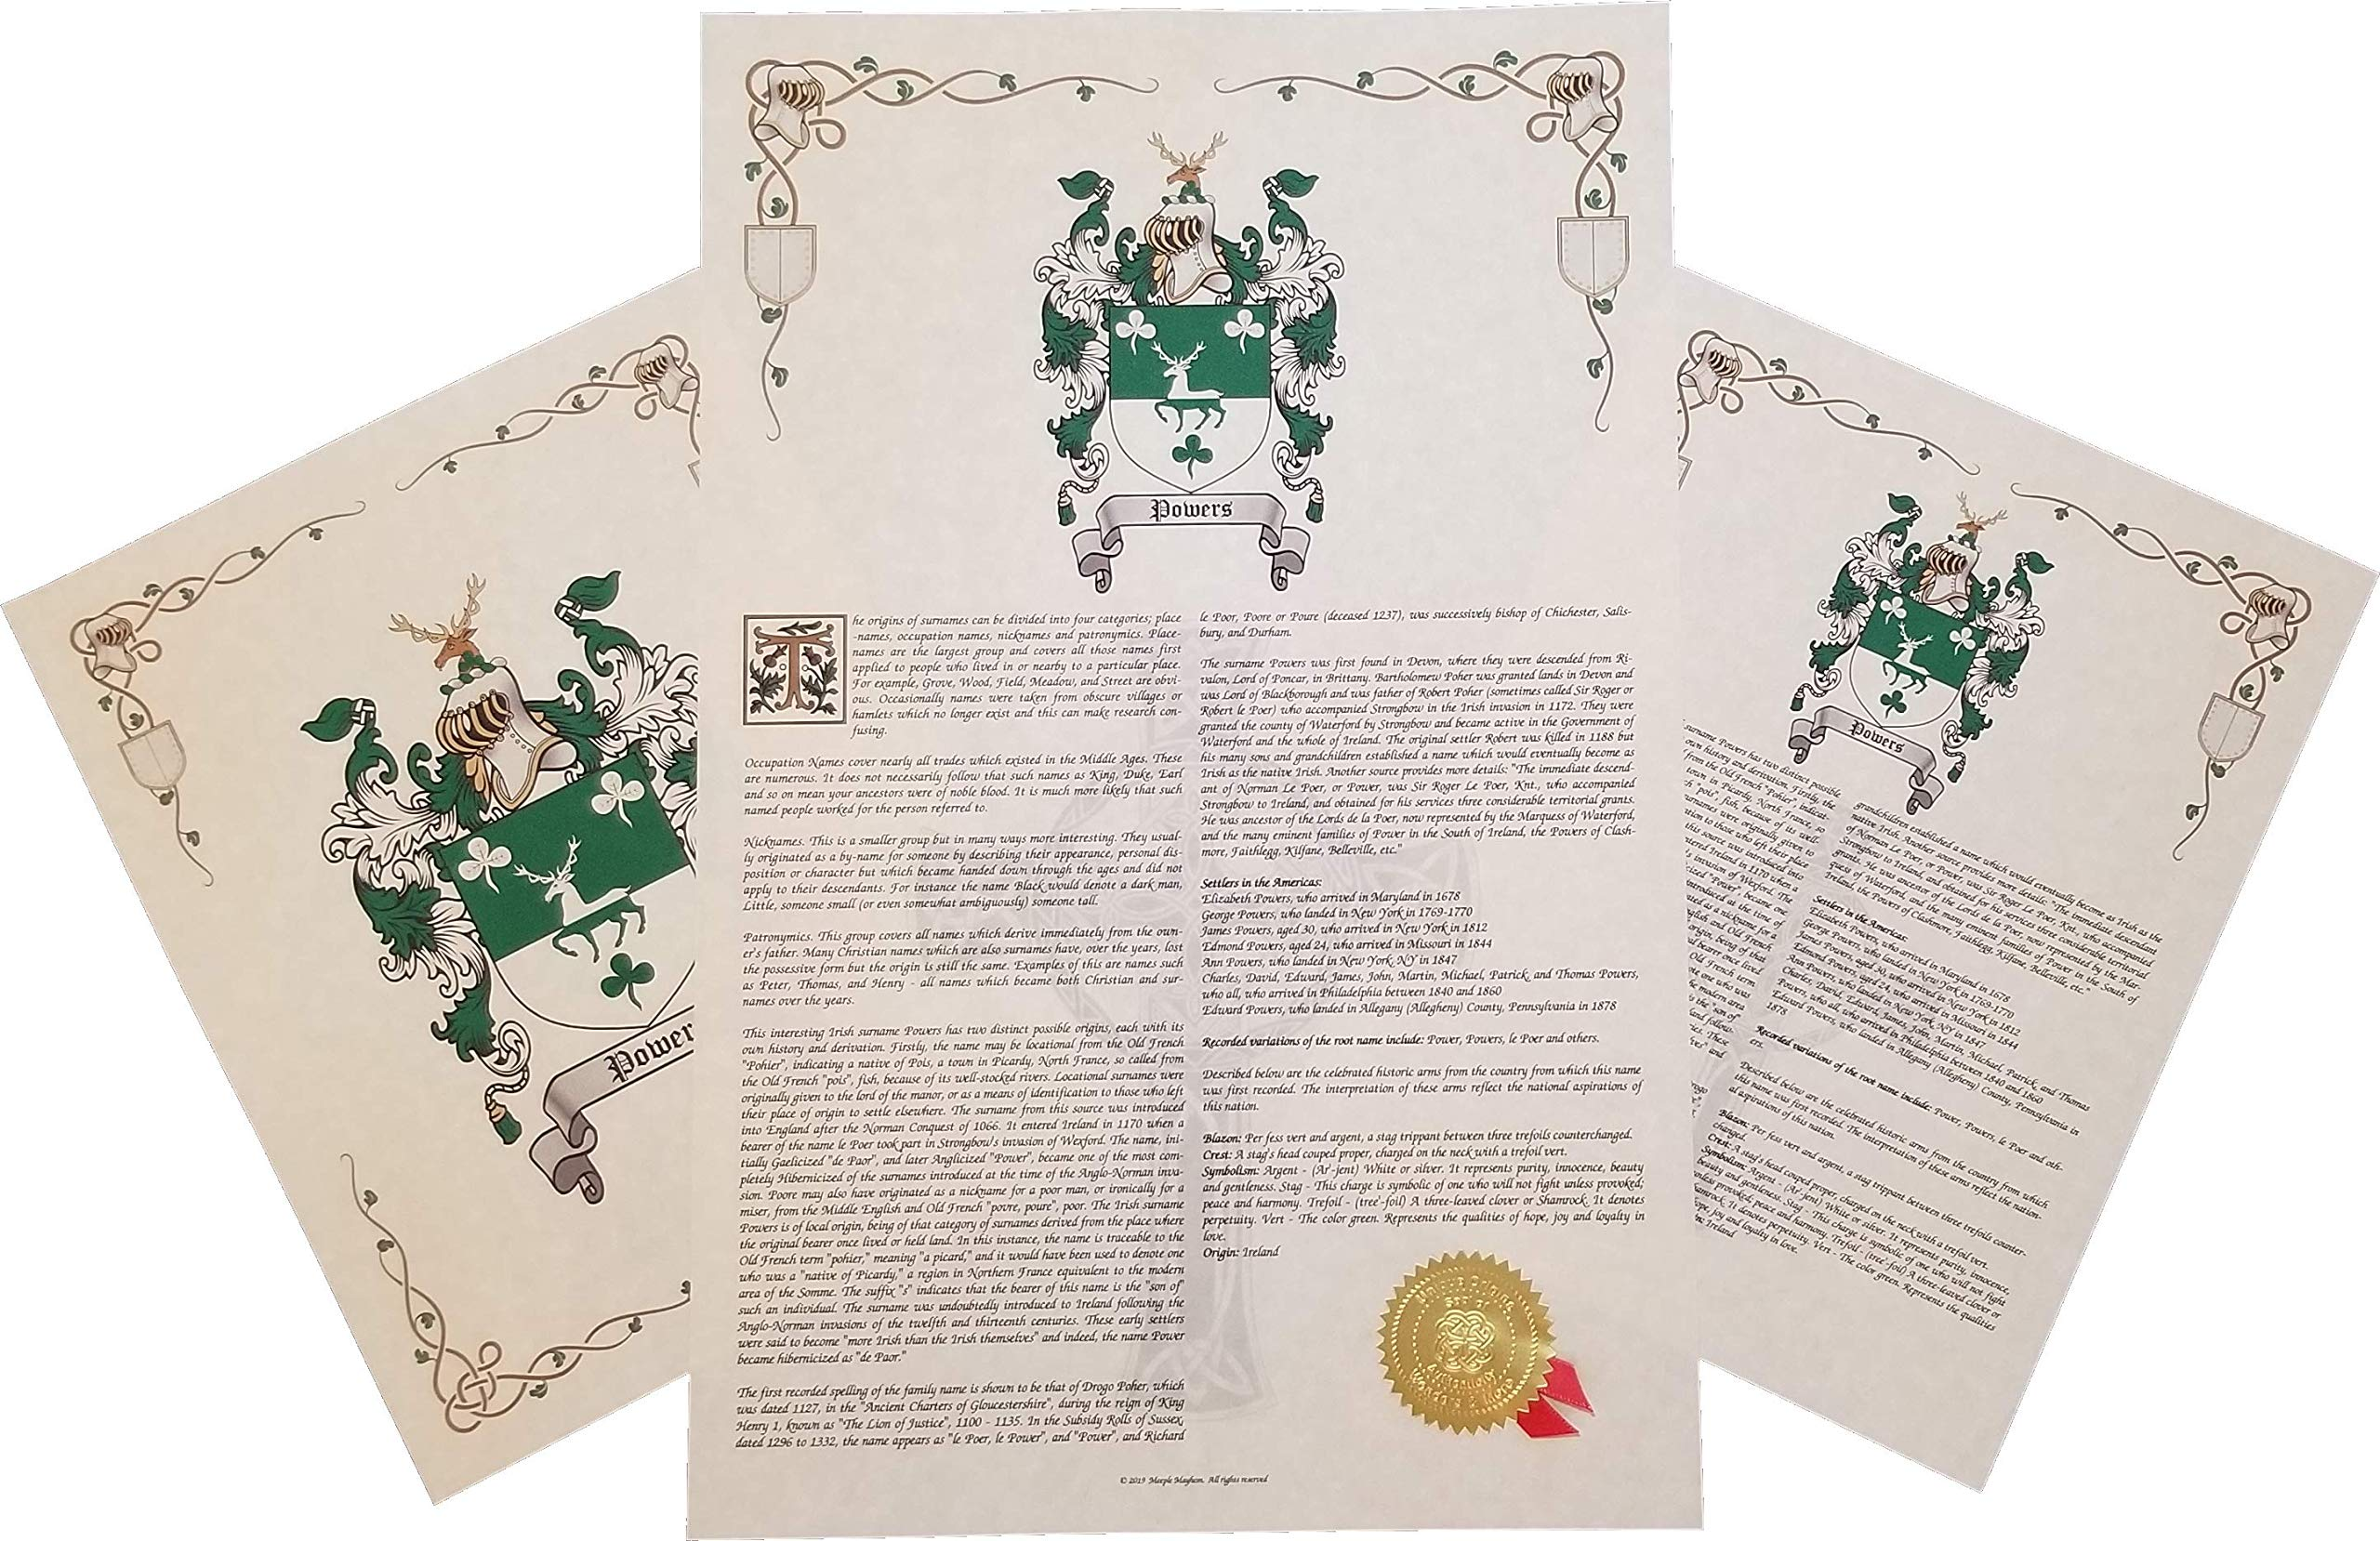 Tysoe Coat Of Arms Family Crest History 3 Print Combo Name Meaning Plus Genealogy Family Tree Research Surname Origin England English Buy Online In Aruba At Aruba Desertcart Com Productid 198712615 Can i name my baby trisha? tysoe coat of arms family crest